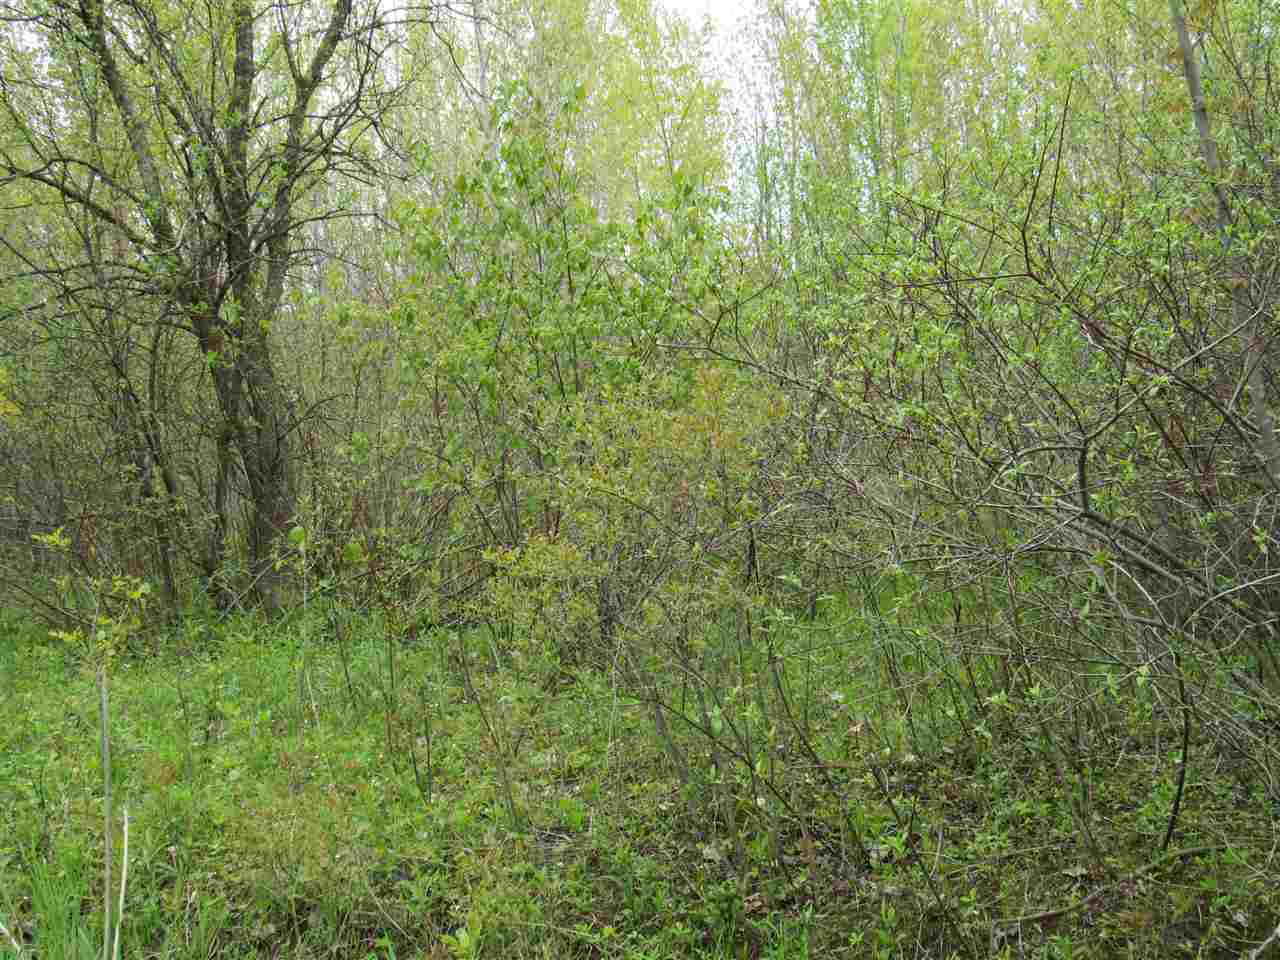 Secluded 1 Acre lot. Close to shopping and freeway. Could be included in a larger development. Commercial possibilities